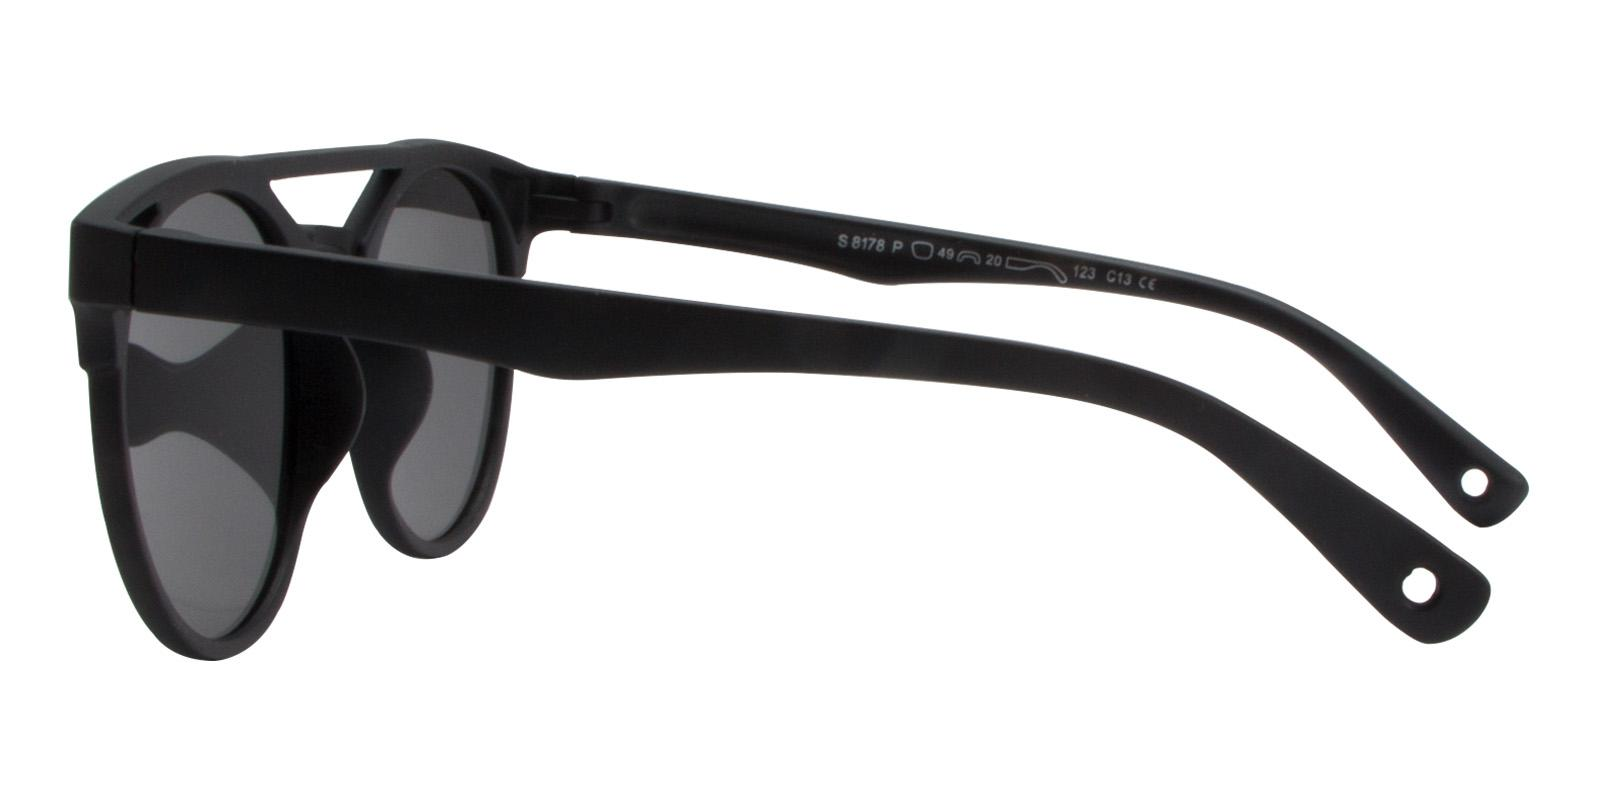 Norbter Gray TR Sunglasses , UniversalBridgeFit Frames from ABBE Glasses